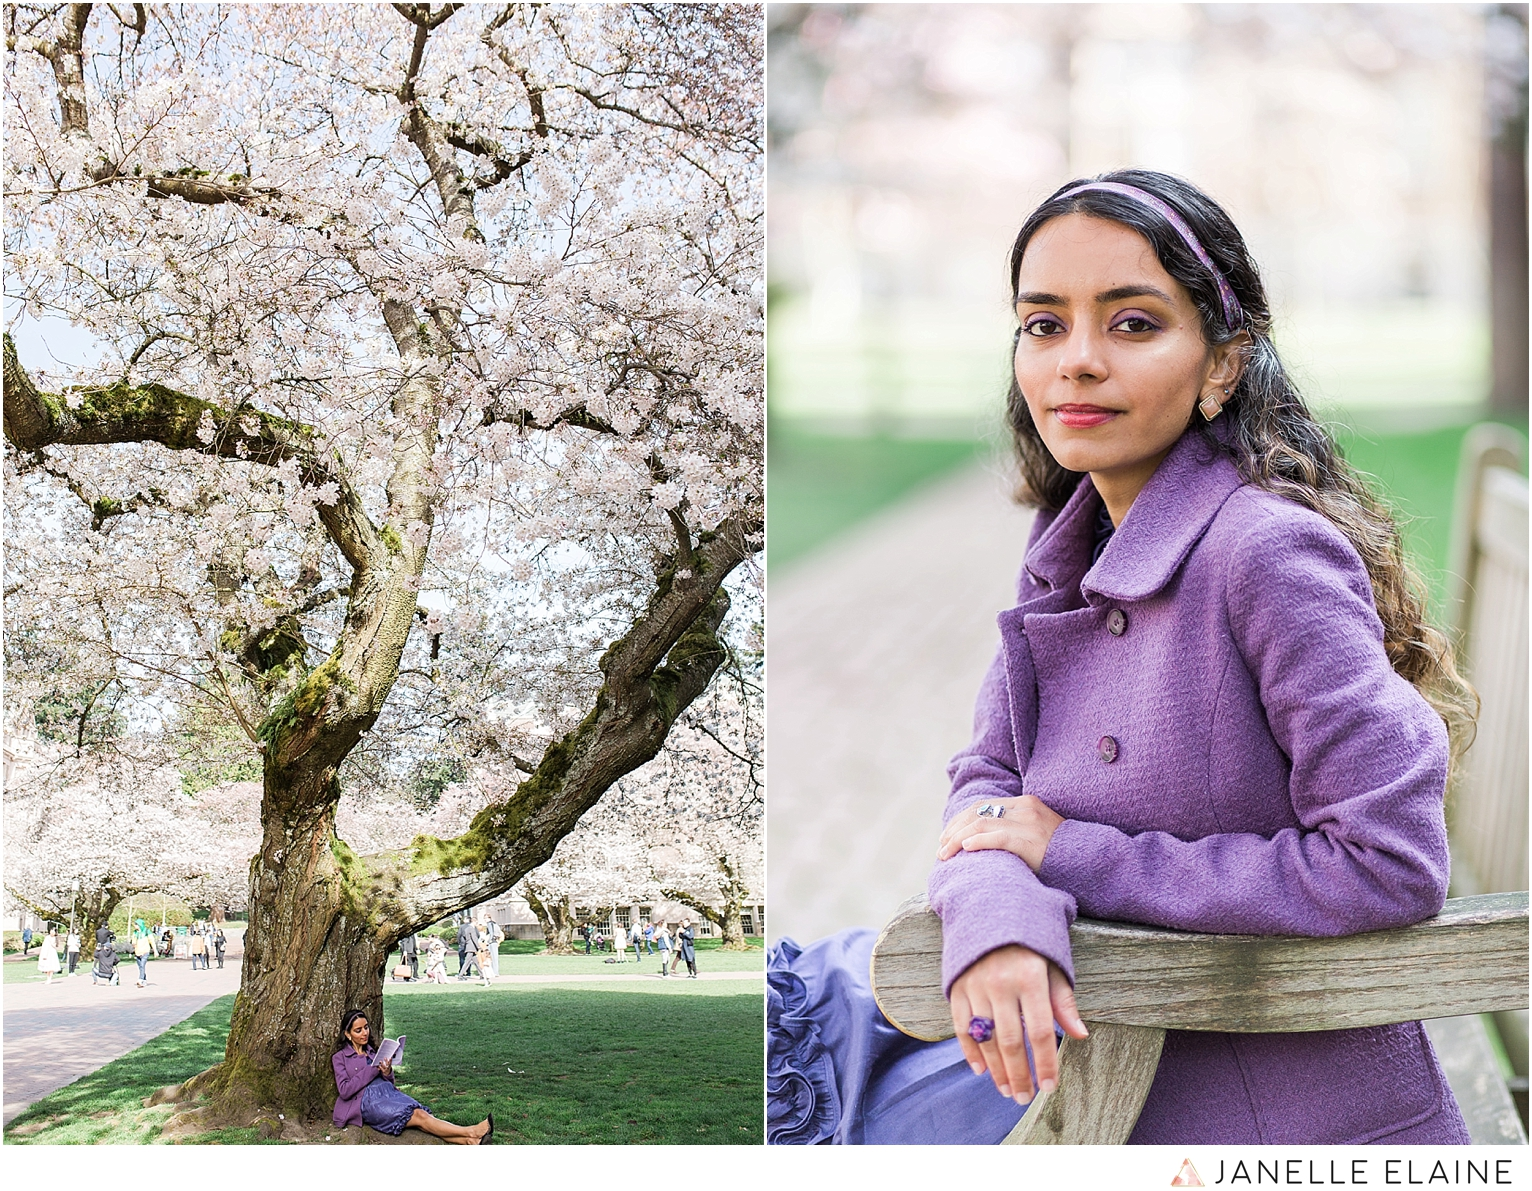 Sufience-Harkirat-spring portrait session-cherry blossoms-uw-seattle photographer janelle elaine-24.jpg